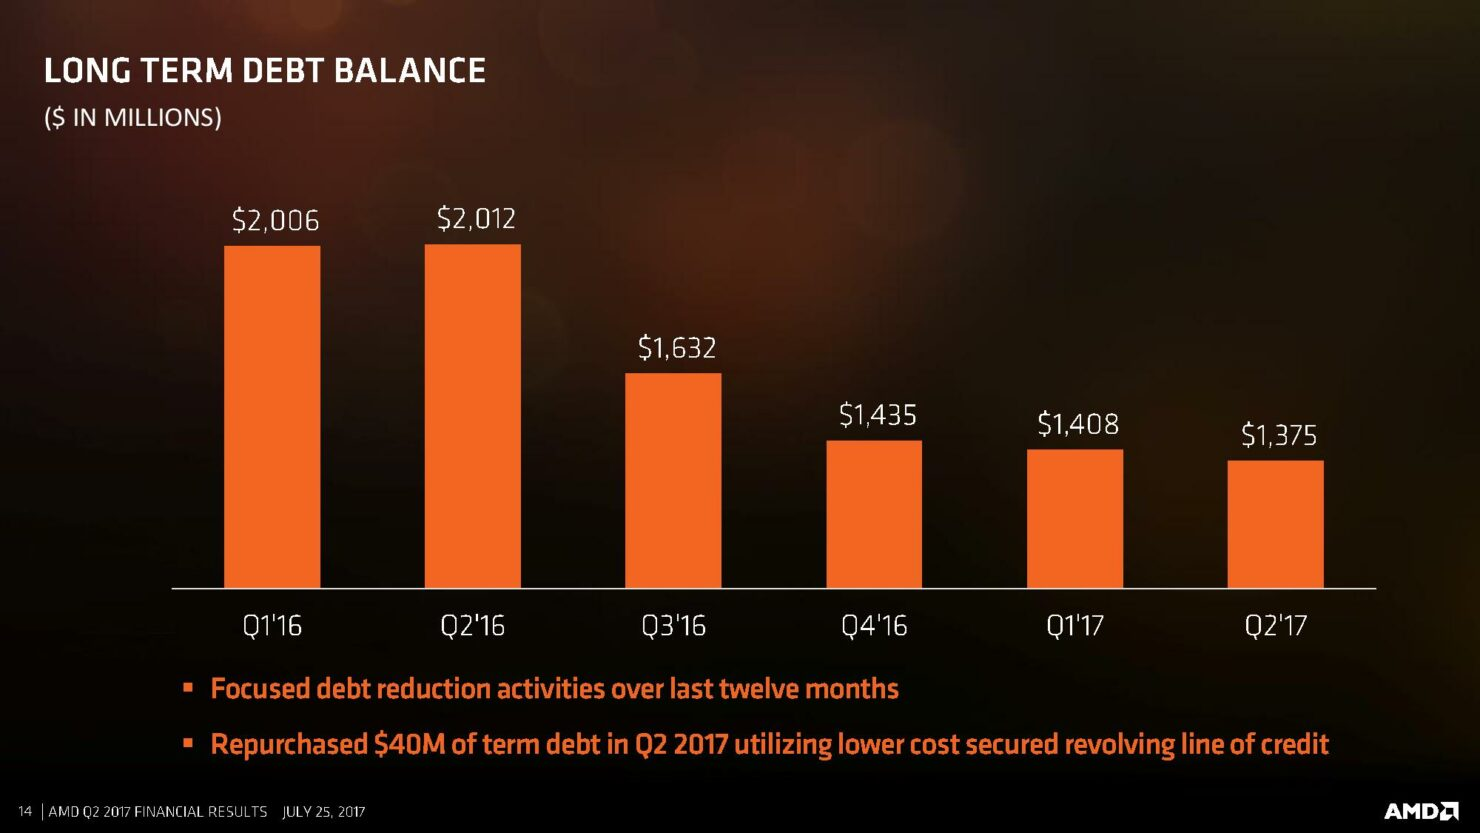 amd-cfo-commentary-slides-q2-17-page-014